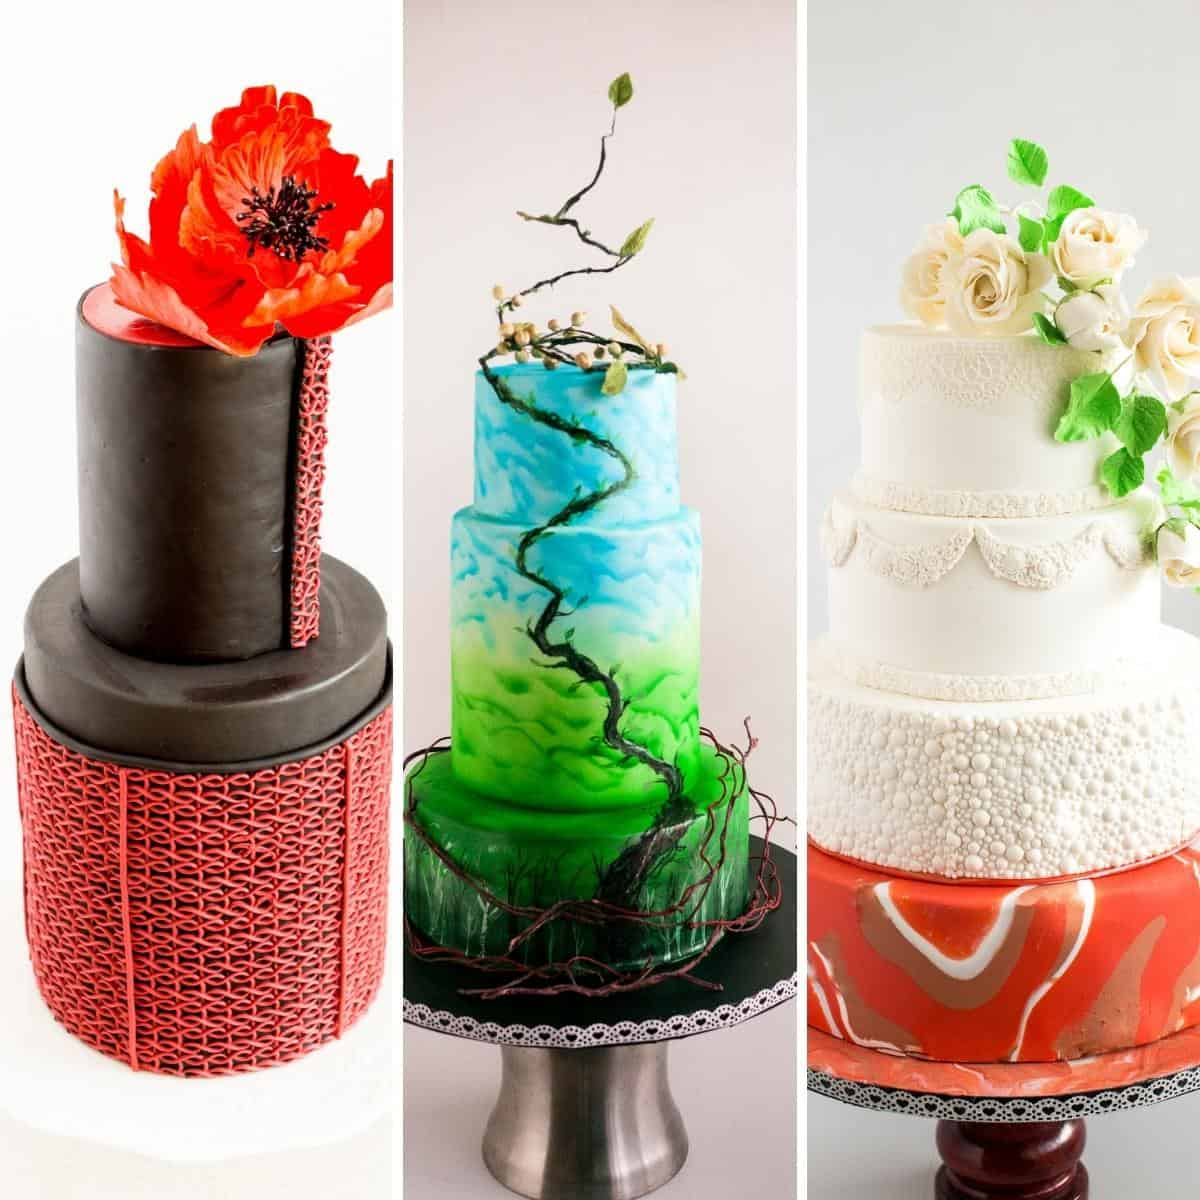 Fondant cakes in a collage.